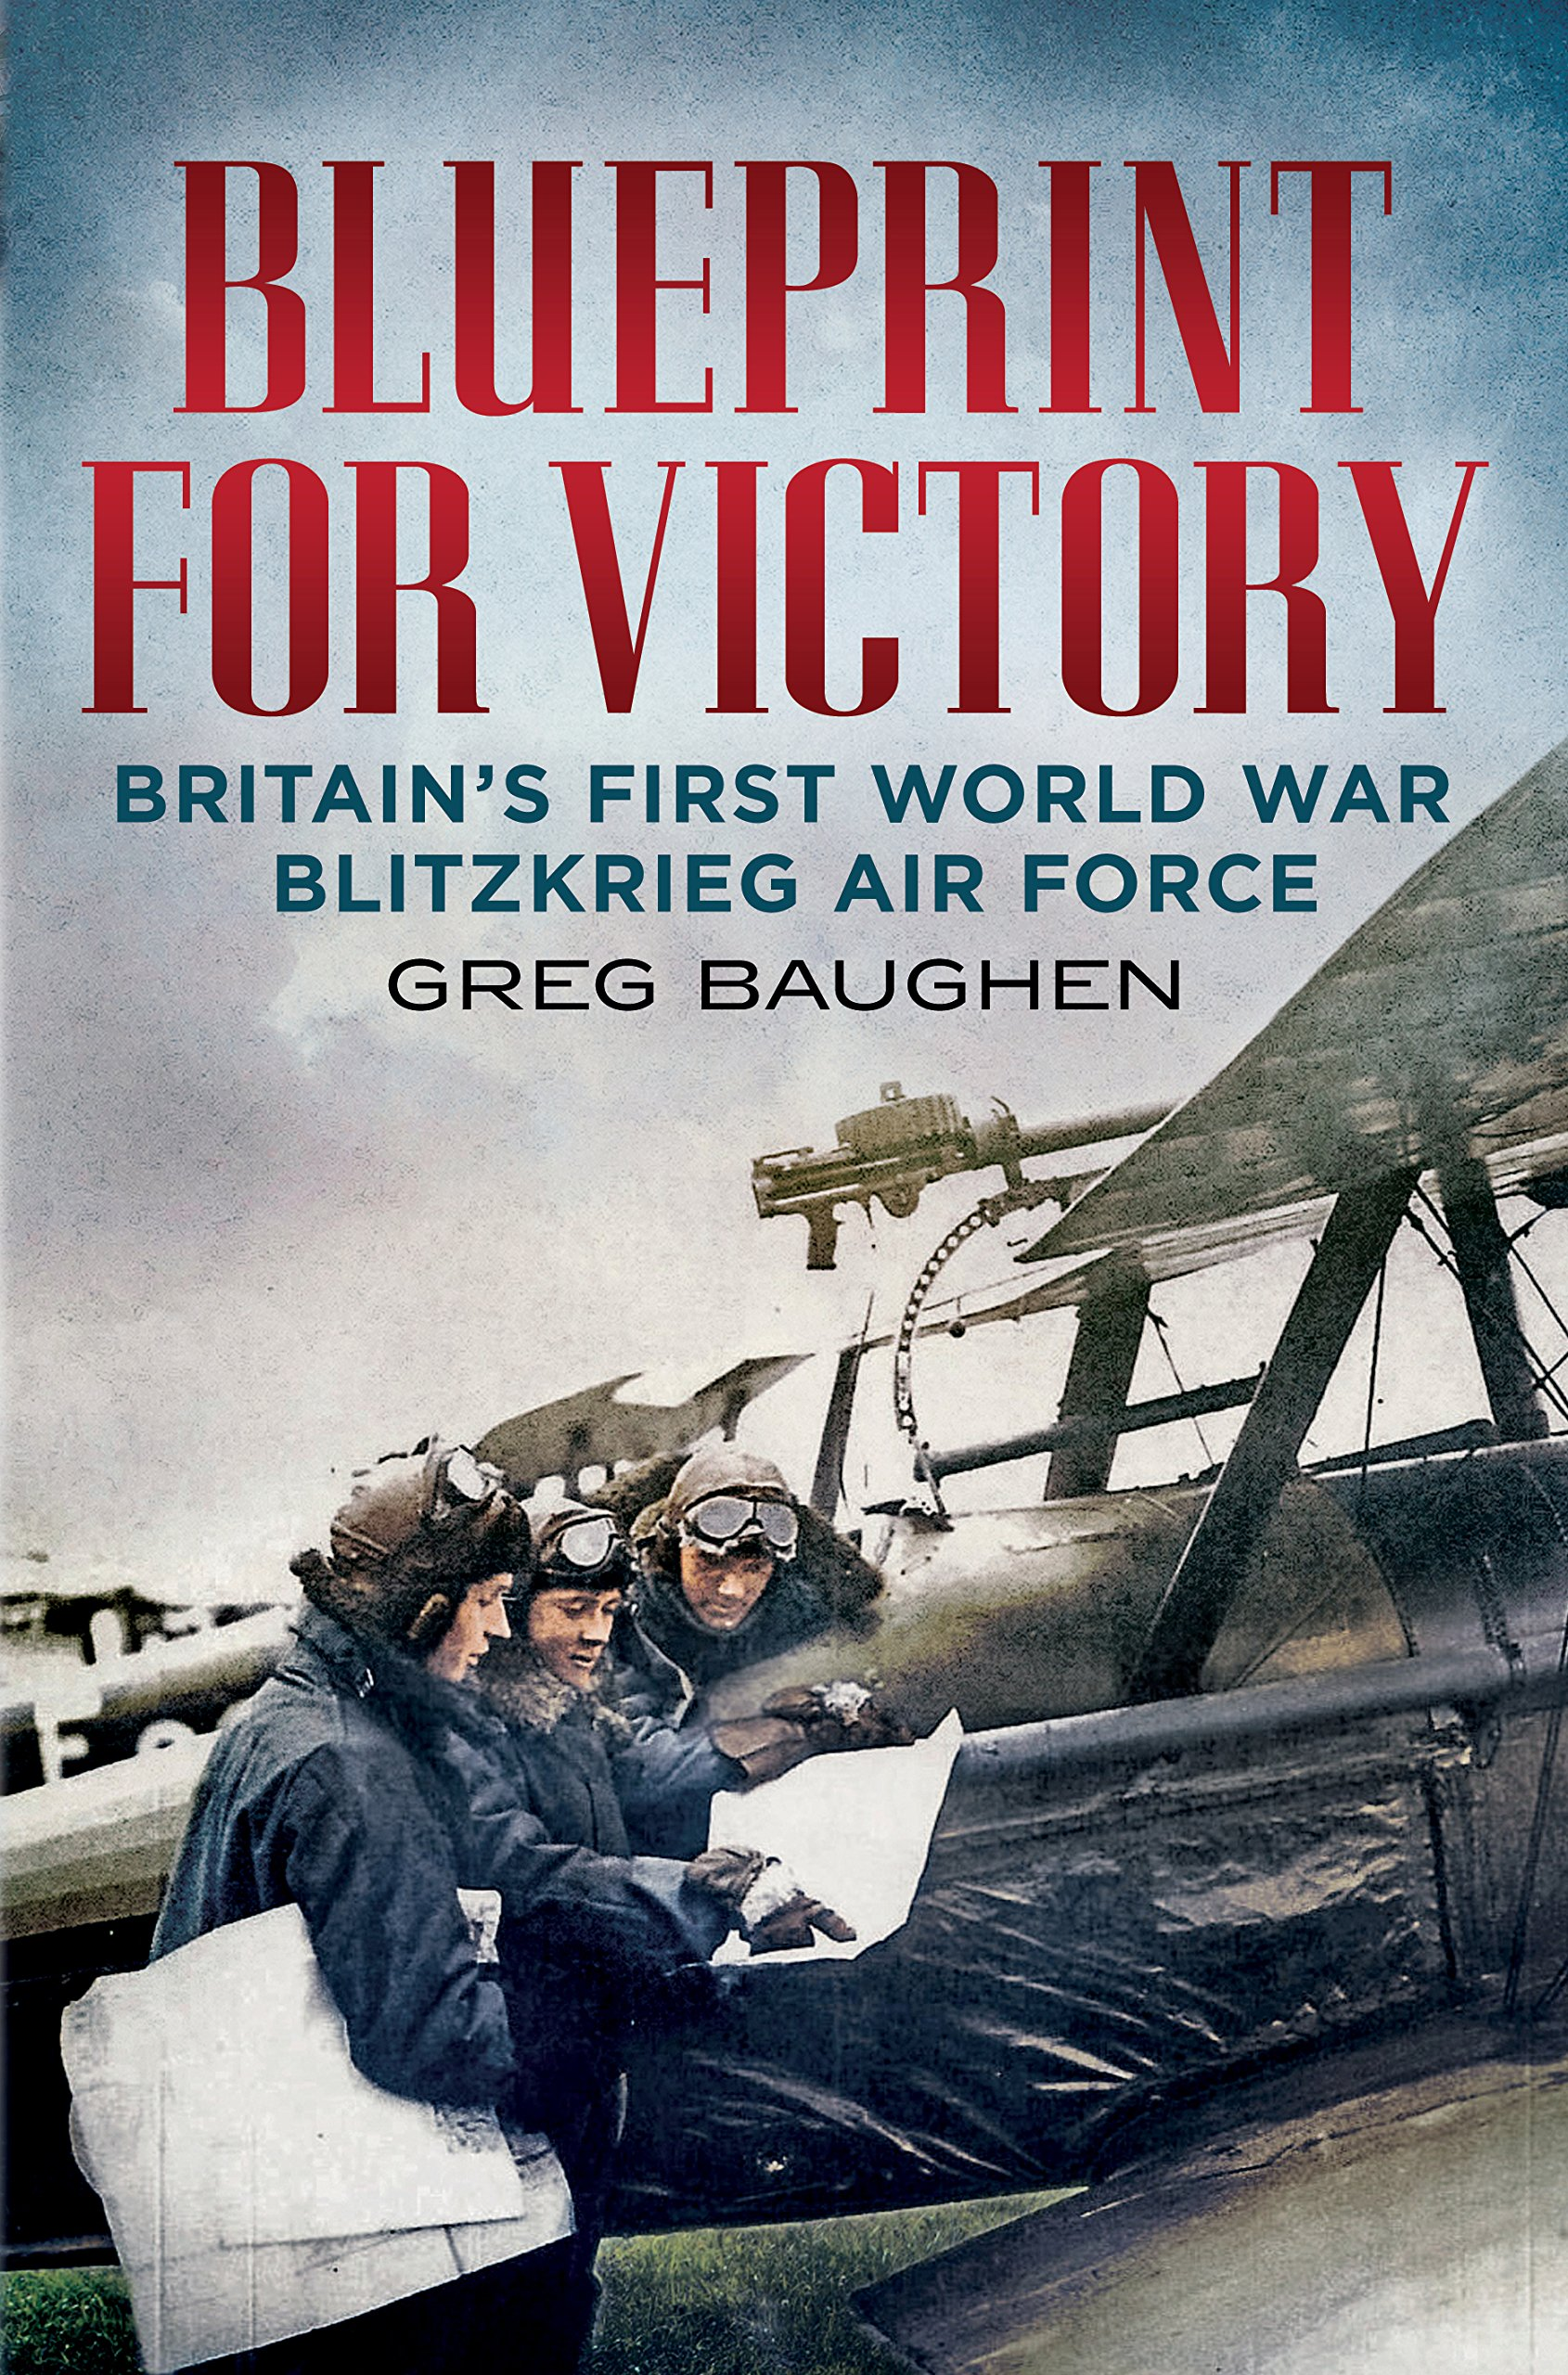 Blueprint for victory britains first world war blitzkrieg air blueprint for victory britains first world war blitzkrieg air force amazon greg baughen 8601406507869 books malvernweather Image collections